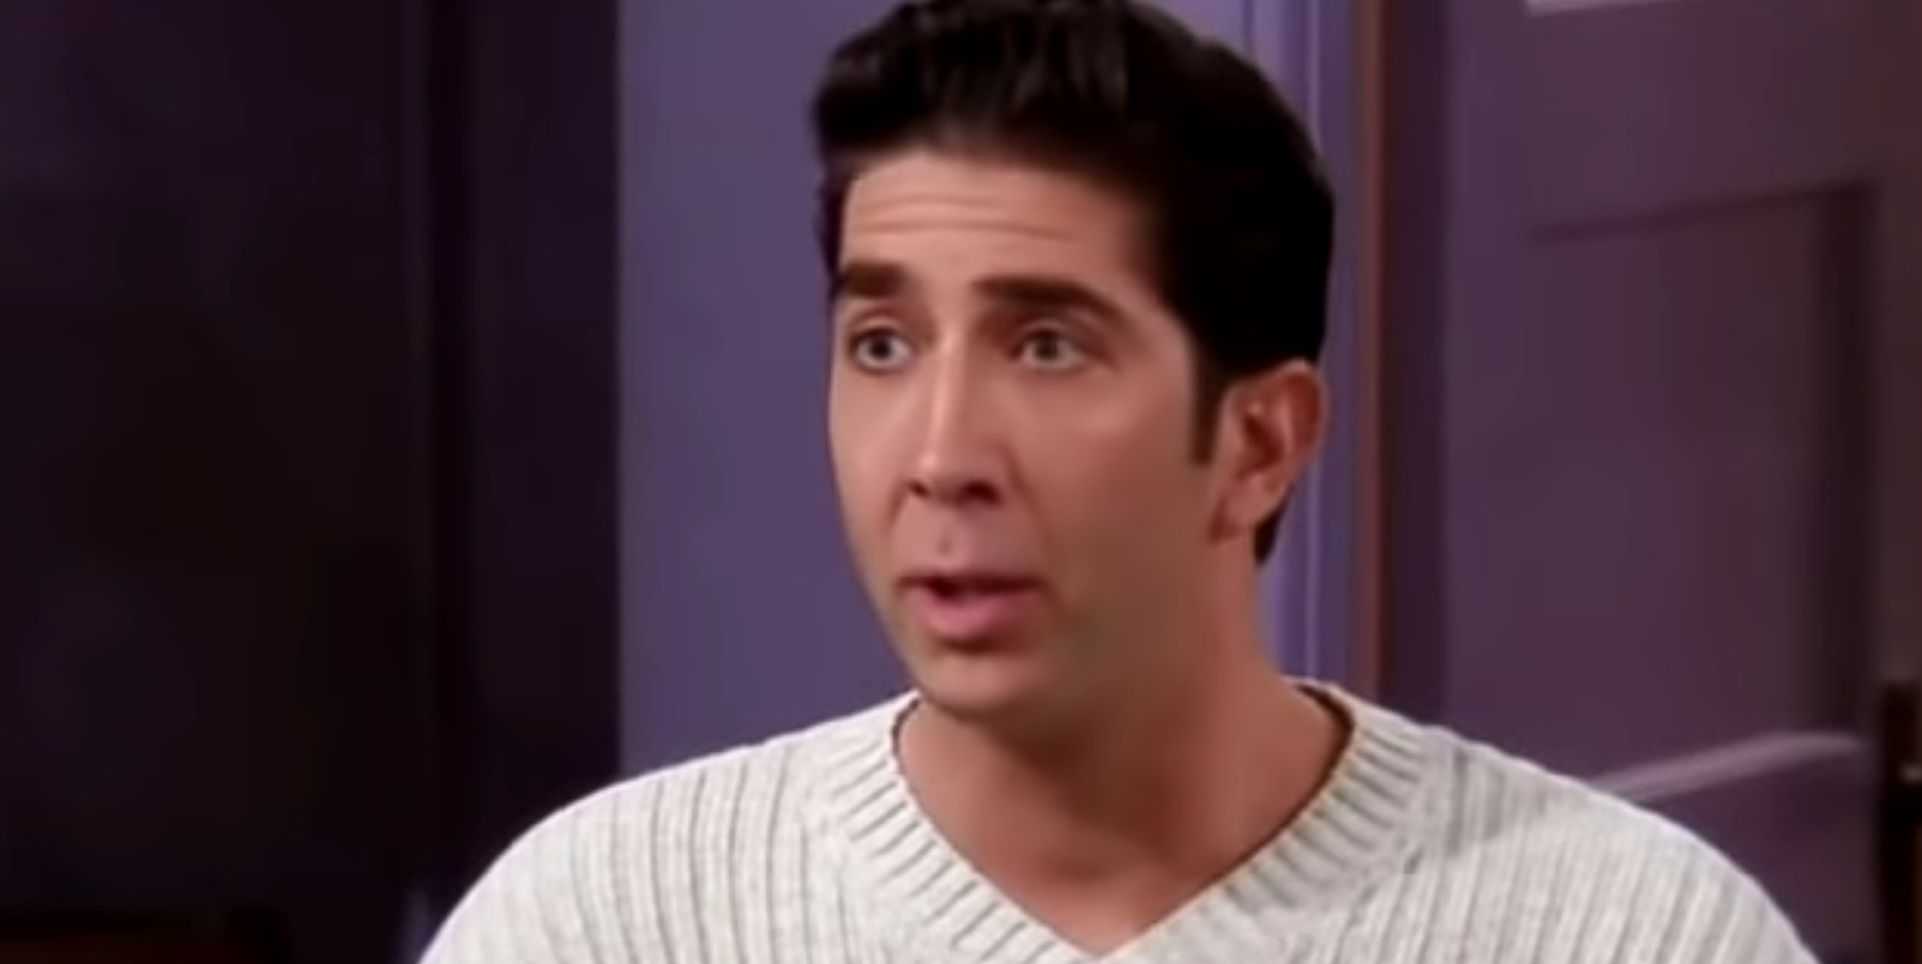 Friends Nicolas Cage Ross Geller